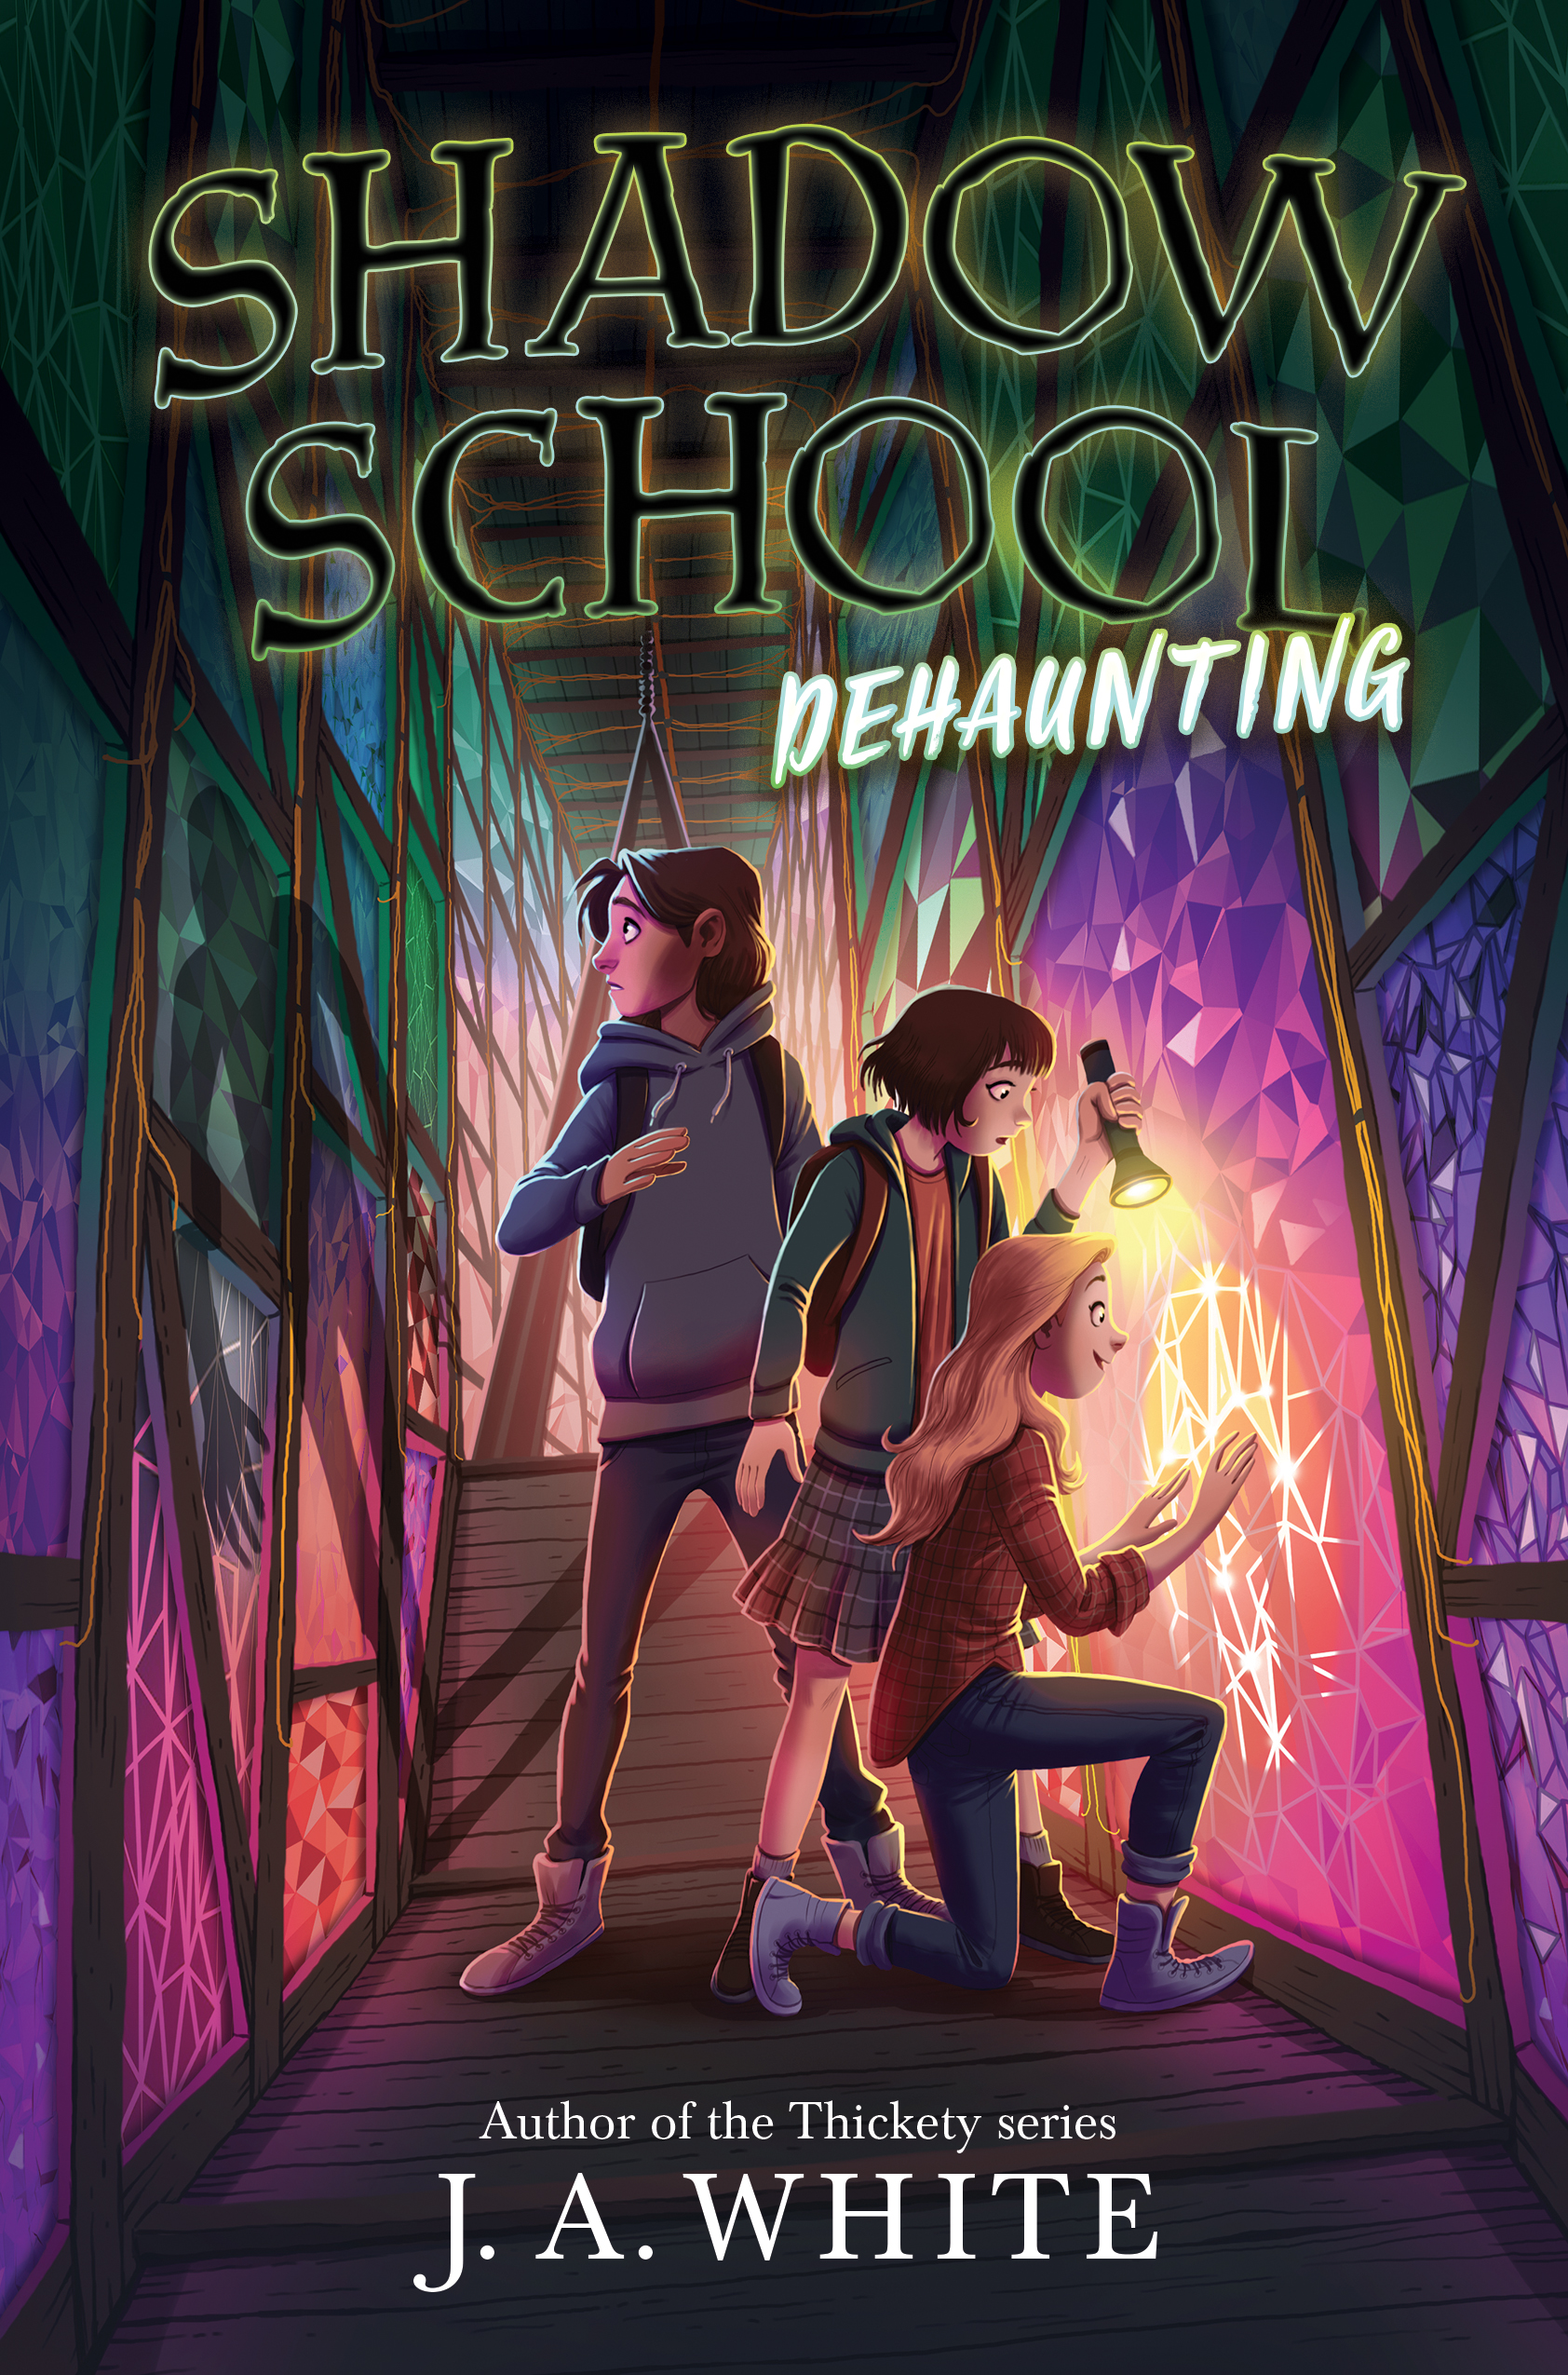 Shadow School: Dehaunting (Shadow School, #2)